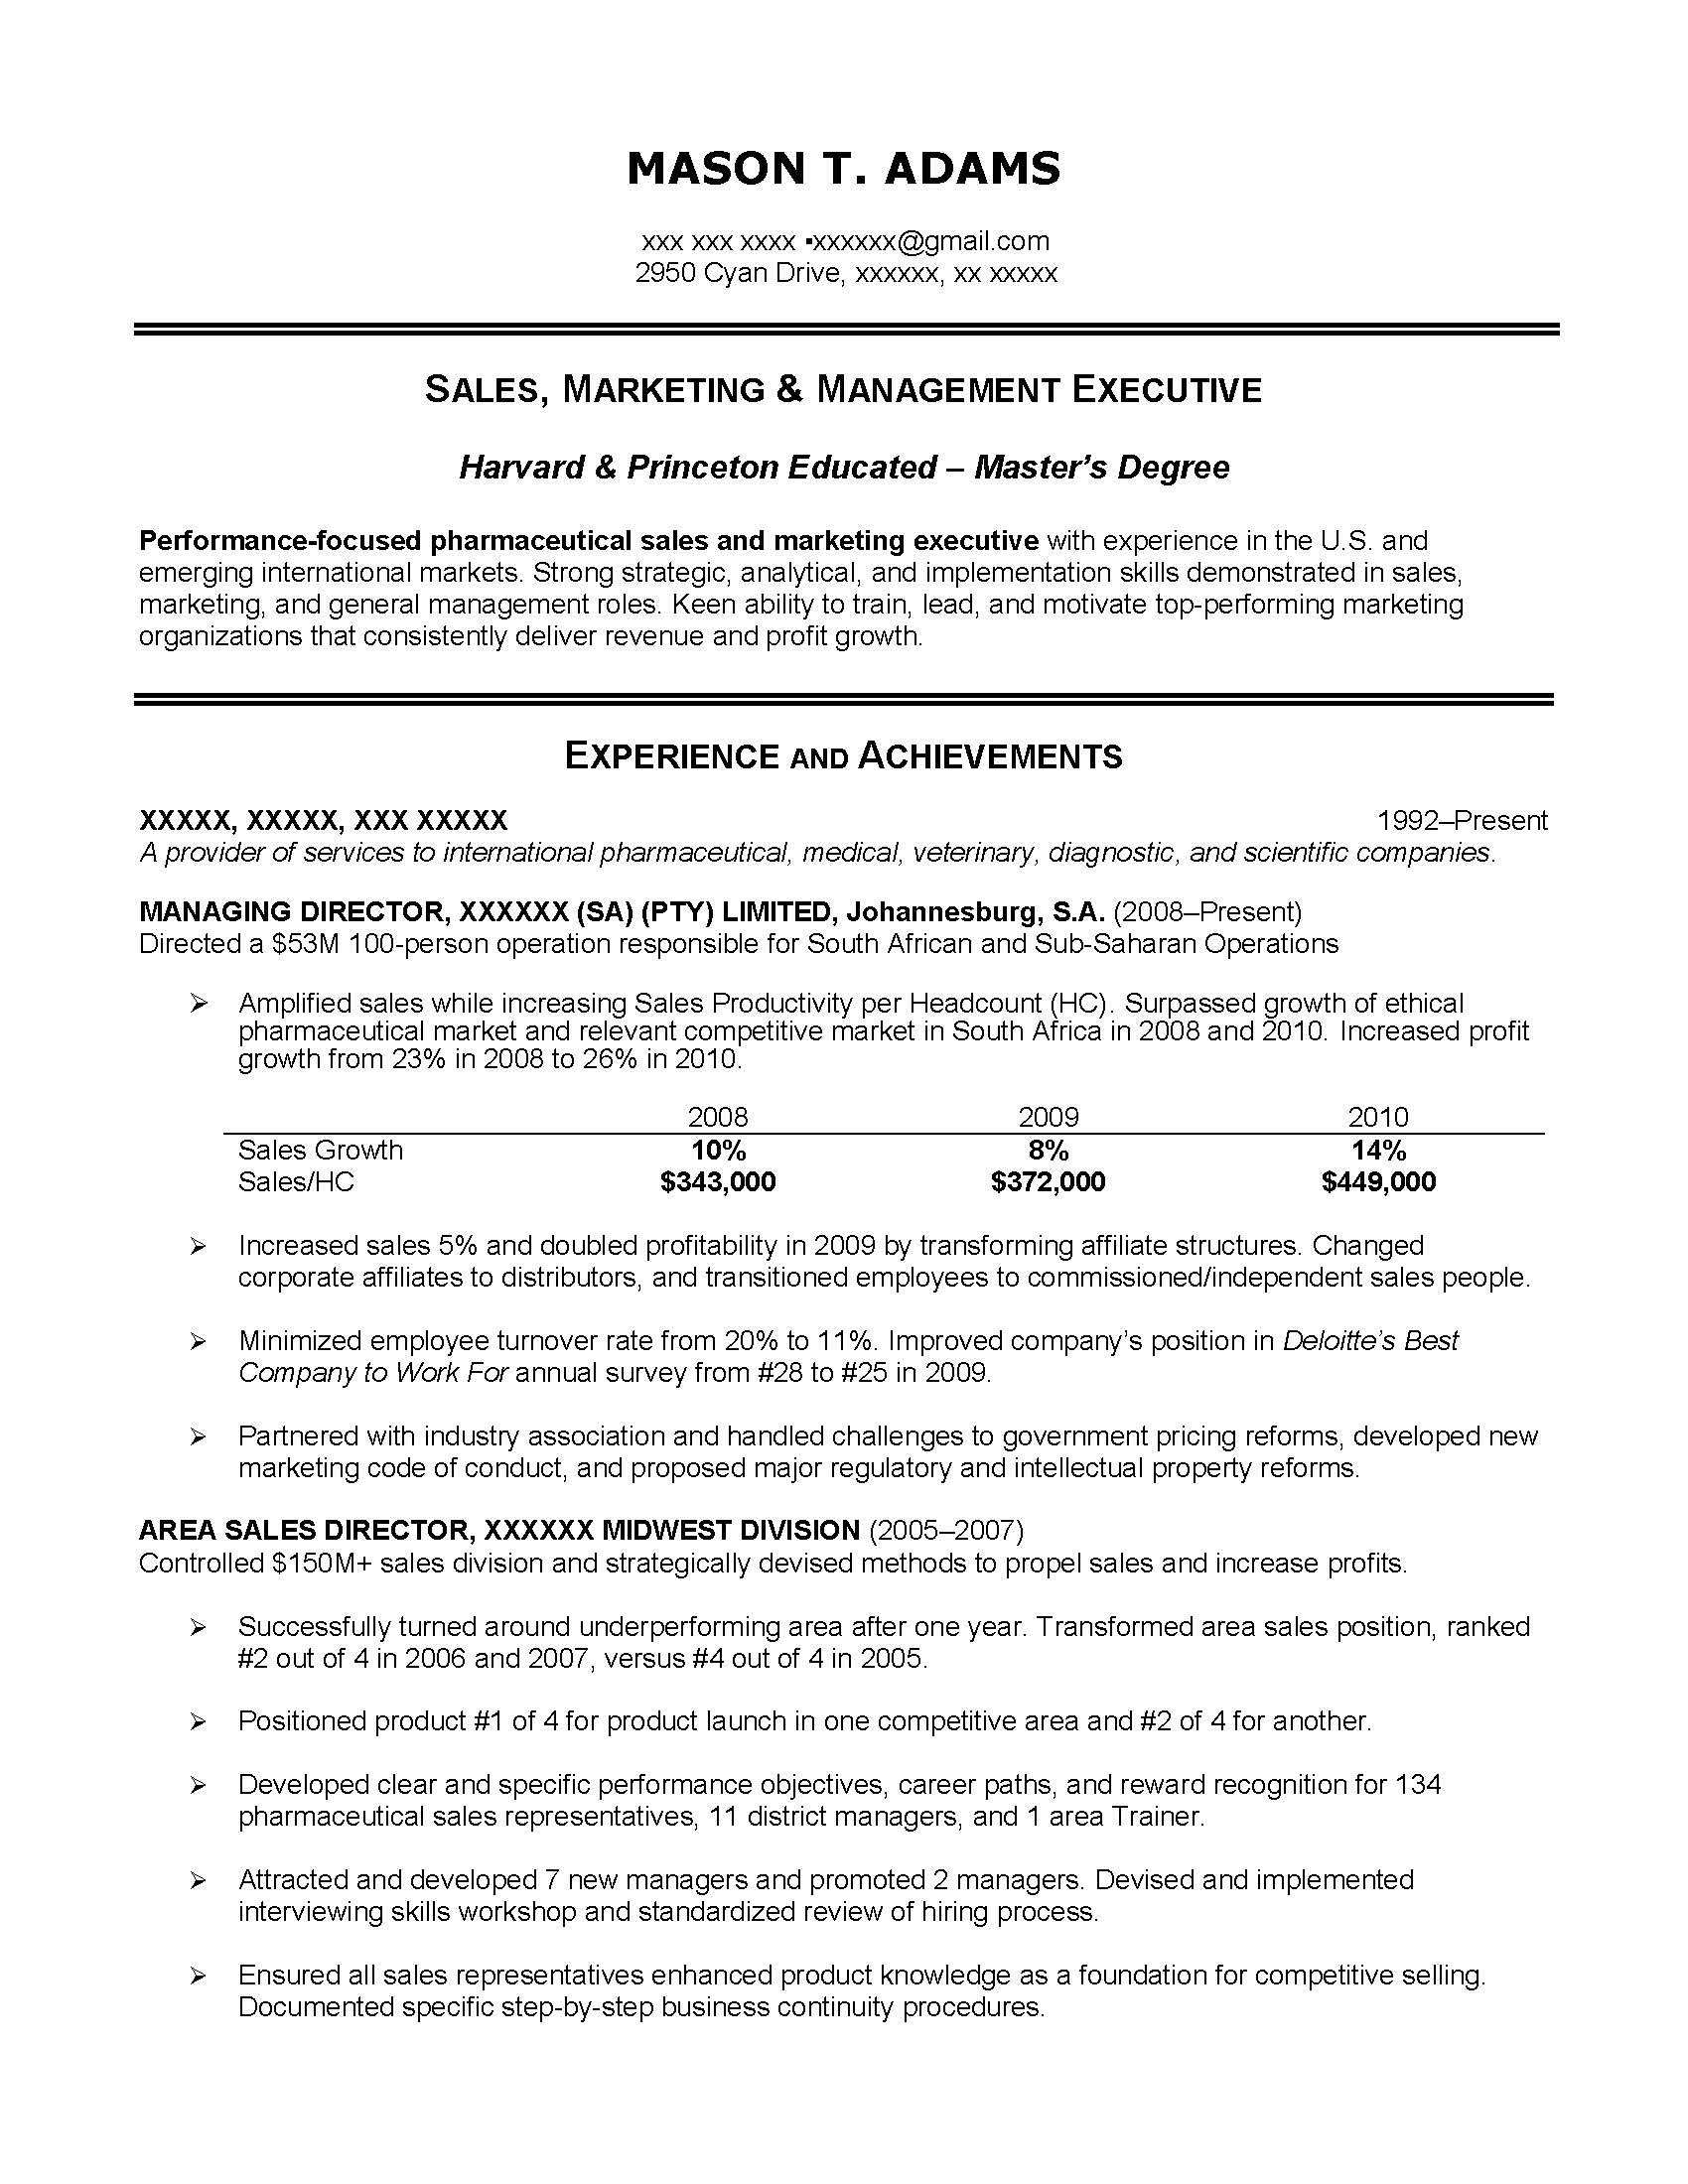 Executive Sales Resume Sample, Provided By Elite Resume Writing Services  Pharmaceutical Sales Resume Sample